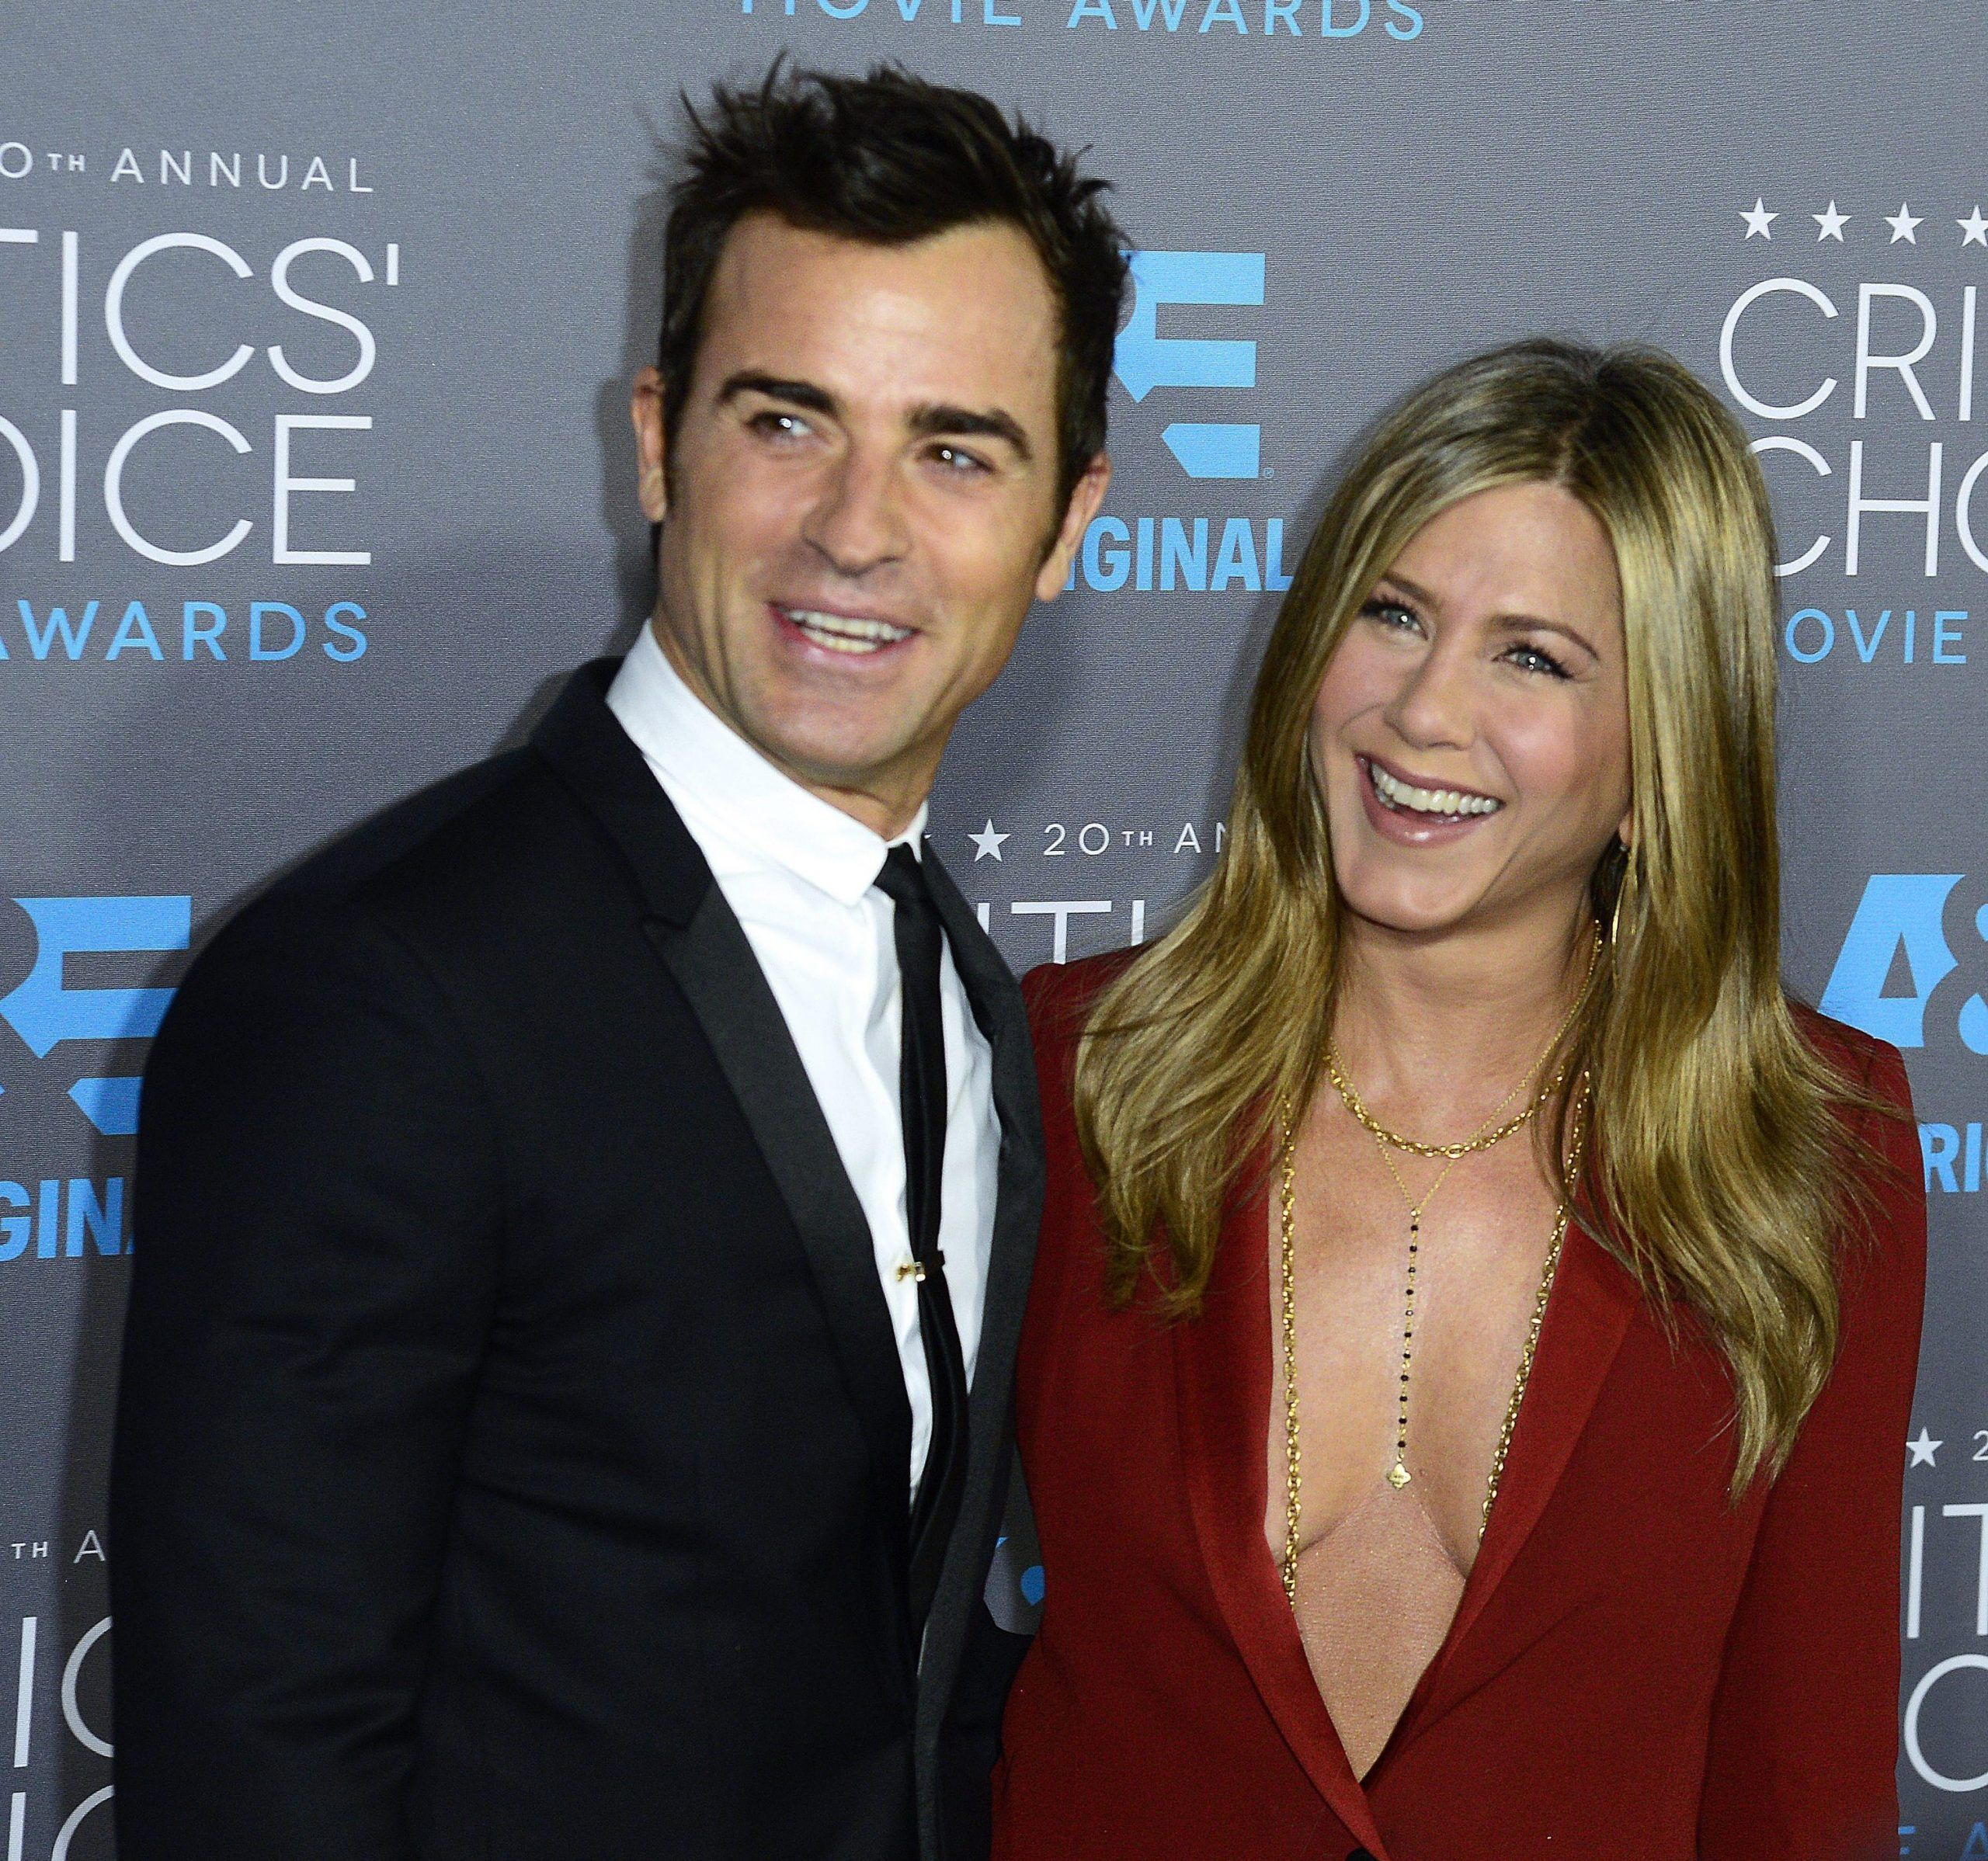 Jennifer Aniston marries Justin Theroux in private Bel Air ceremony